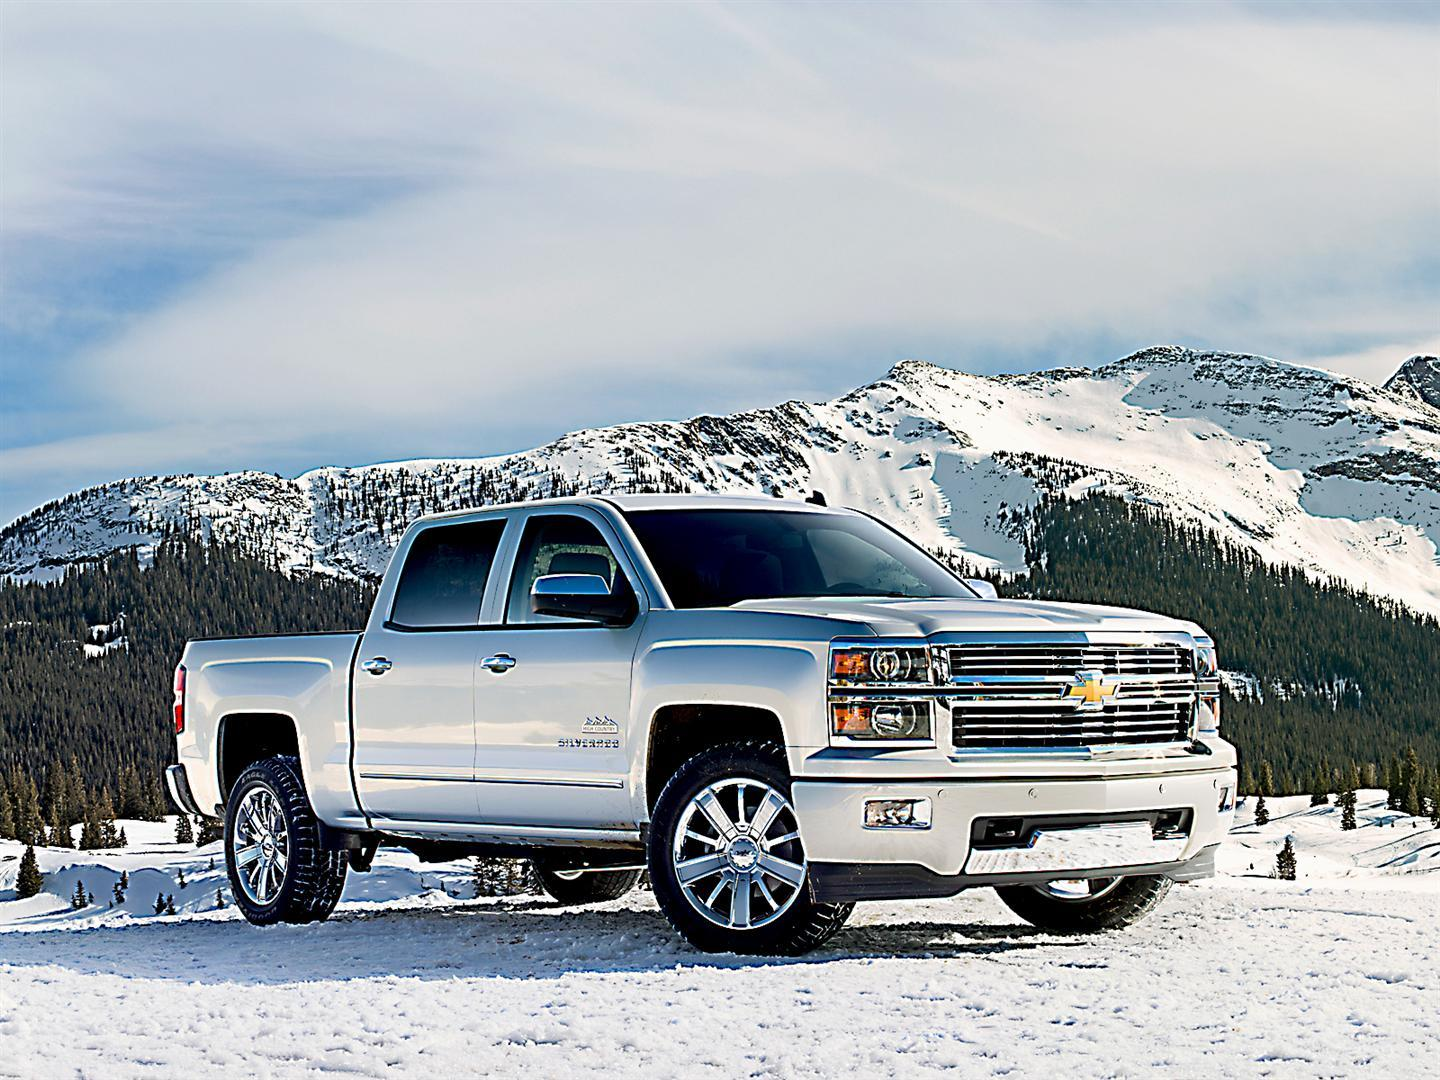 2019 Chevrolet Silverado 1500 Dimensions and Towing Capacity